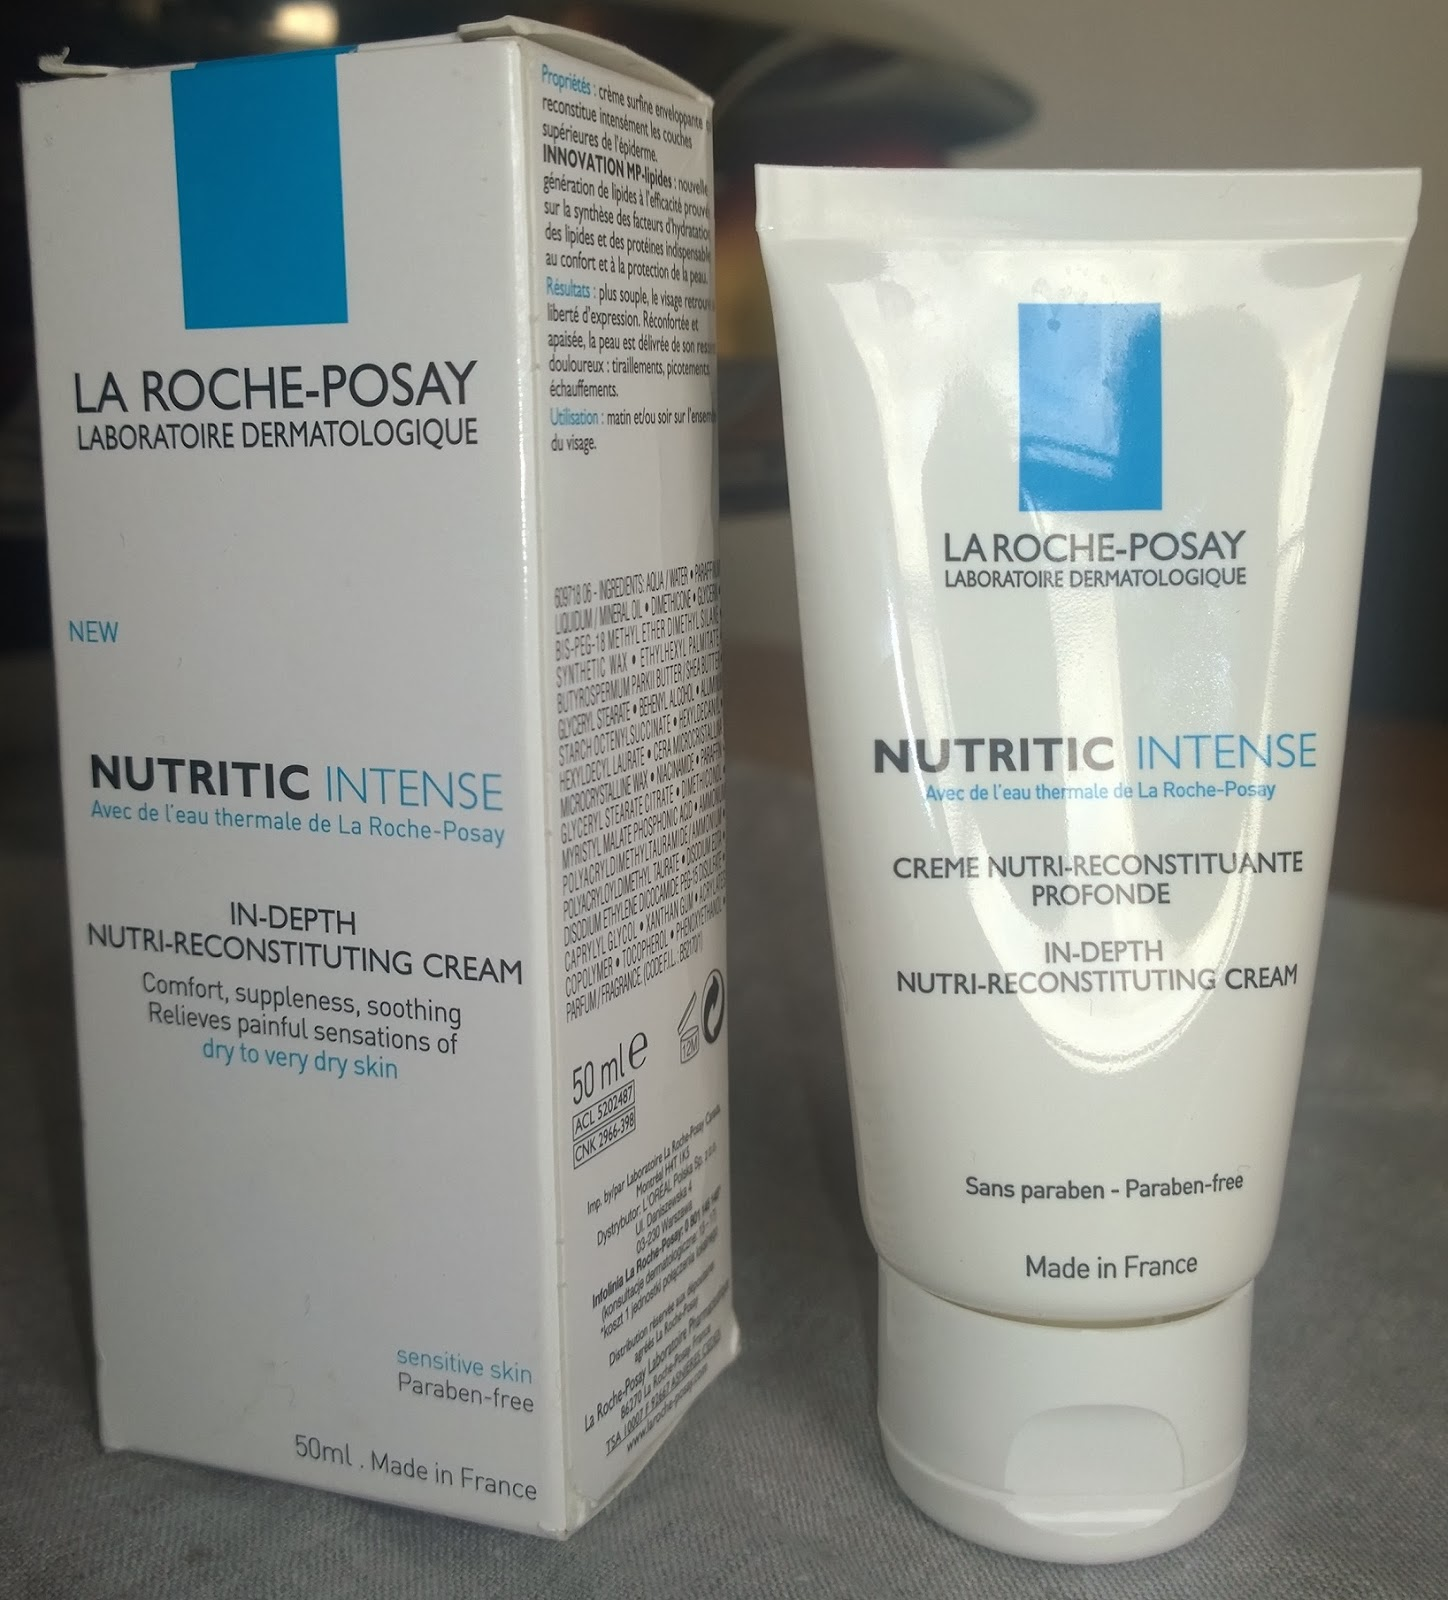 make up for dolls la roche posay nutritic intense review. Black Bedroom Furniture Sets. Home Design Ideas